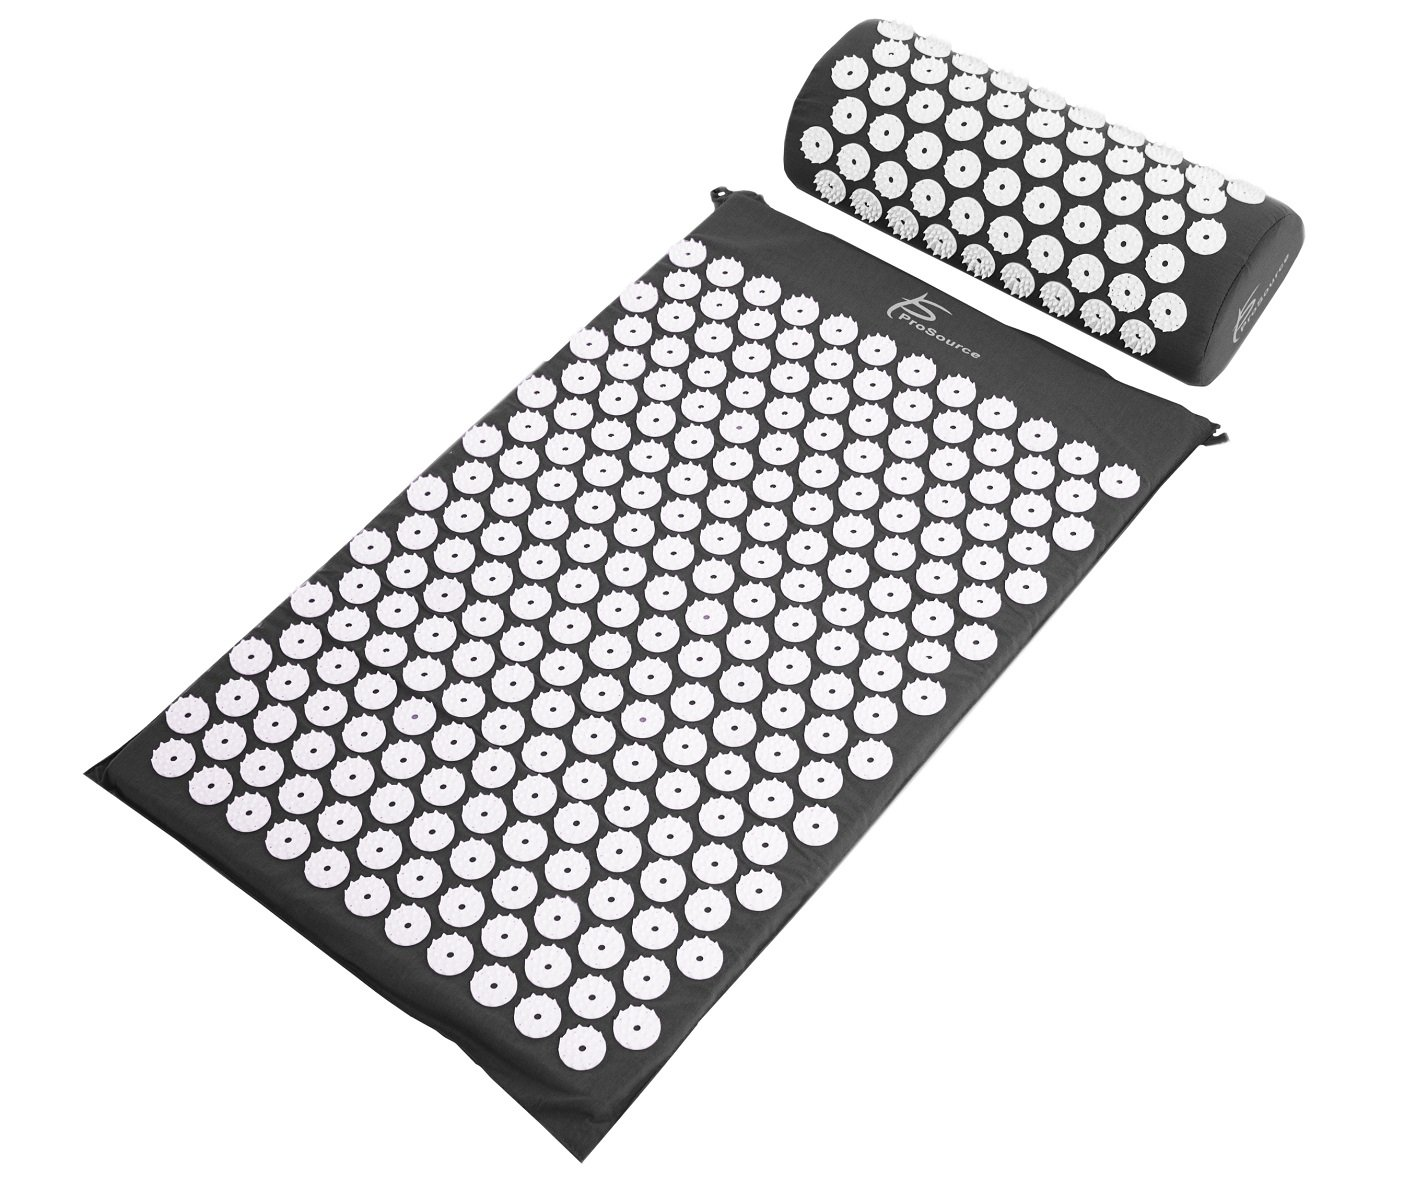 ProSource Acupressure Mat and Pillow Set for Back/Neck Pain Relief and Muscle Relaxation, Black by ProSource (Image #2)